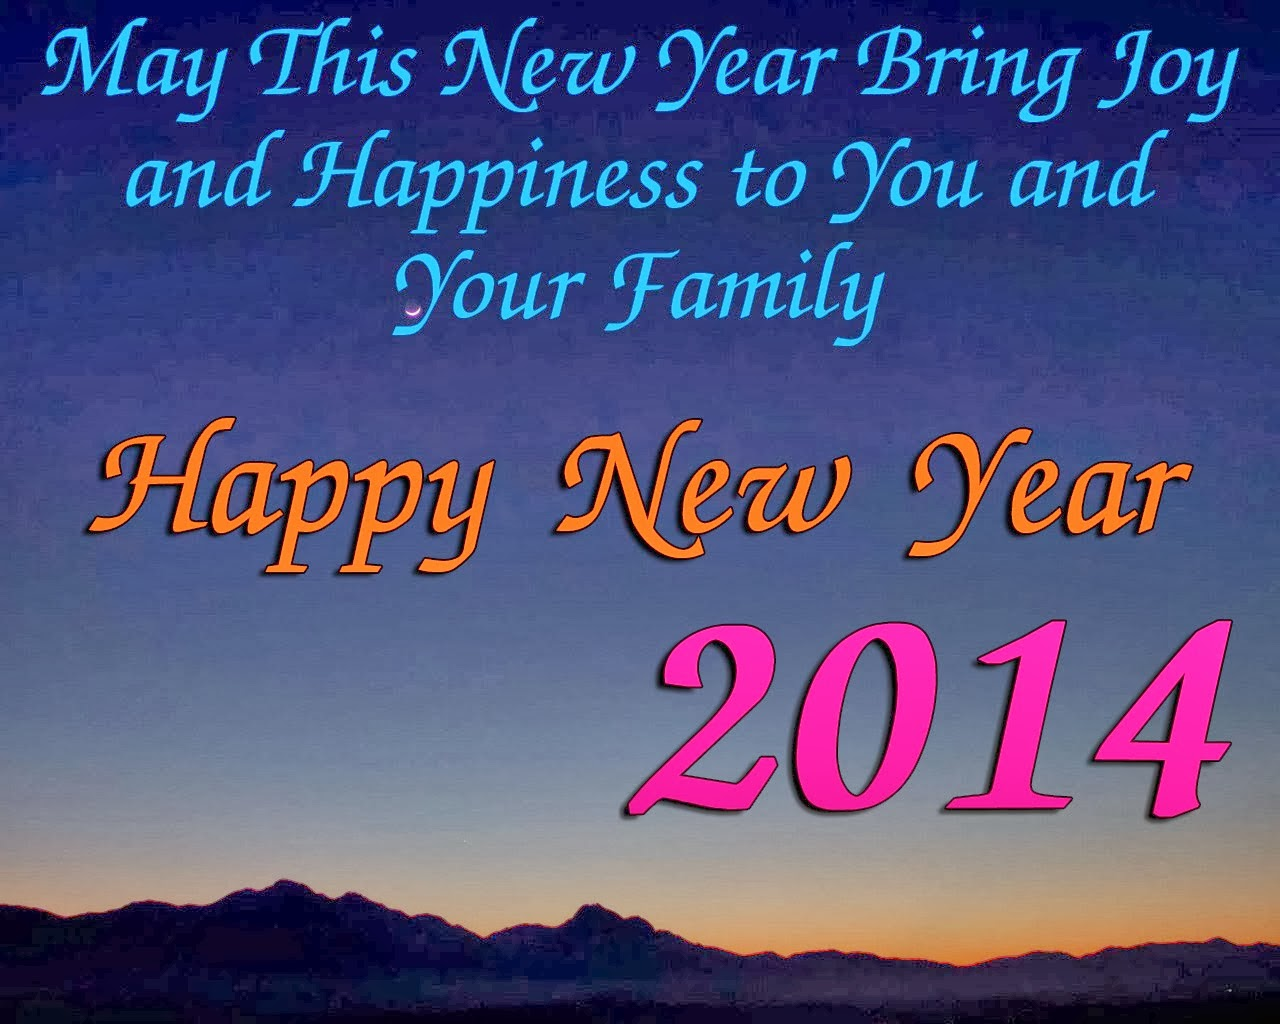 Happy New Year Quotes 2014.9 Spiritual Happy New Year Greeting Cards 2014